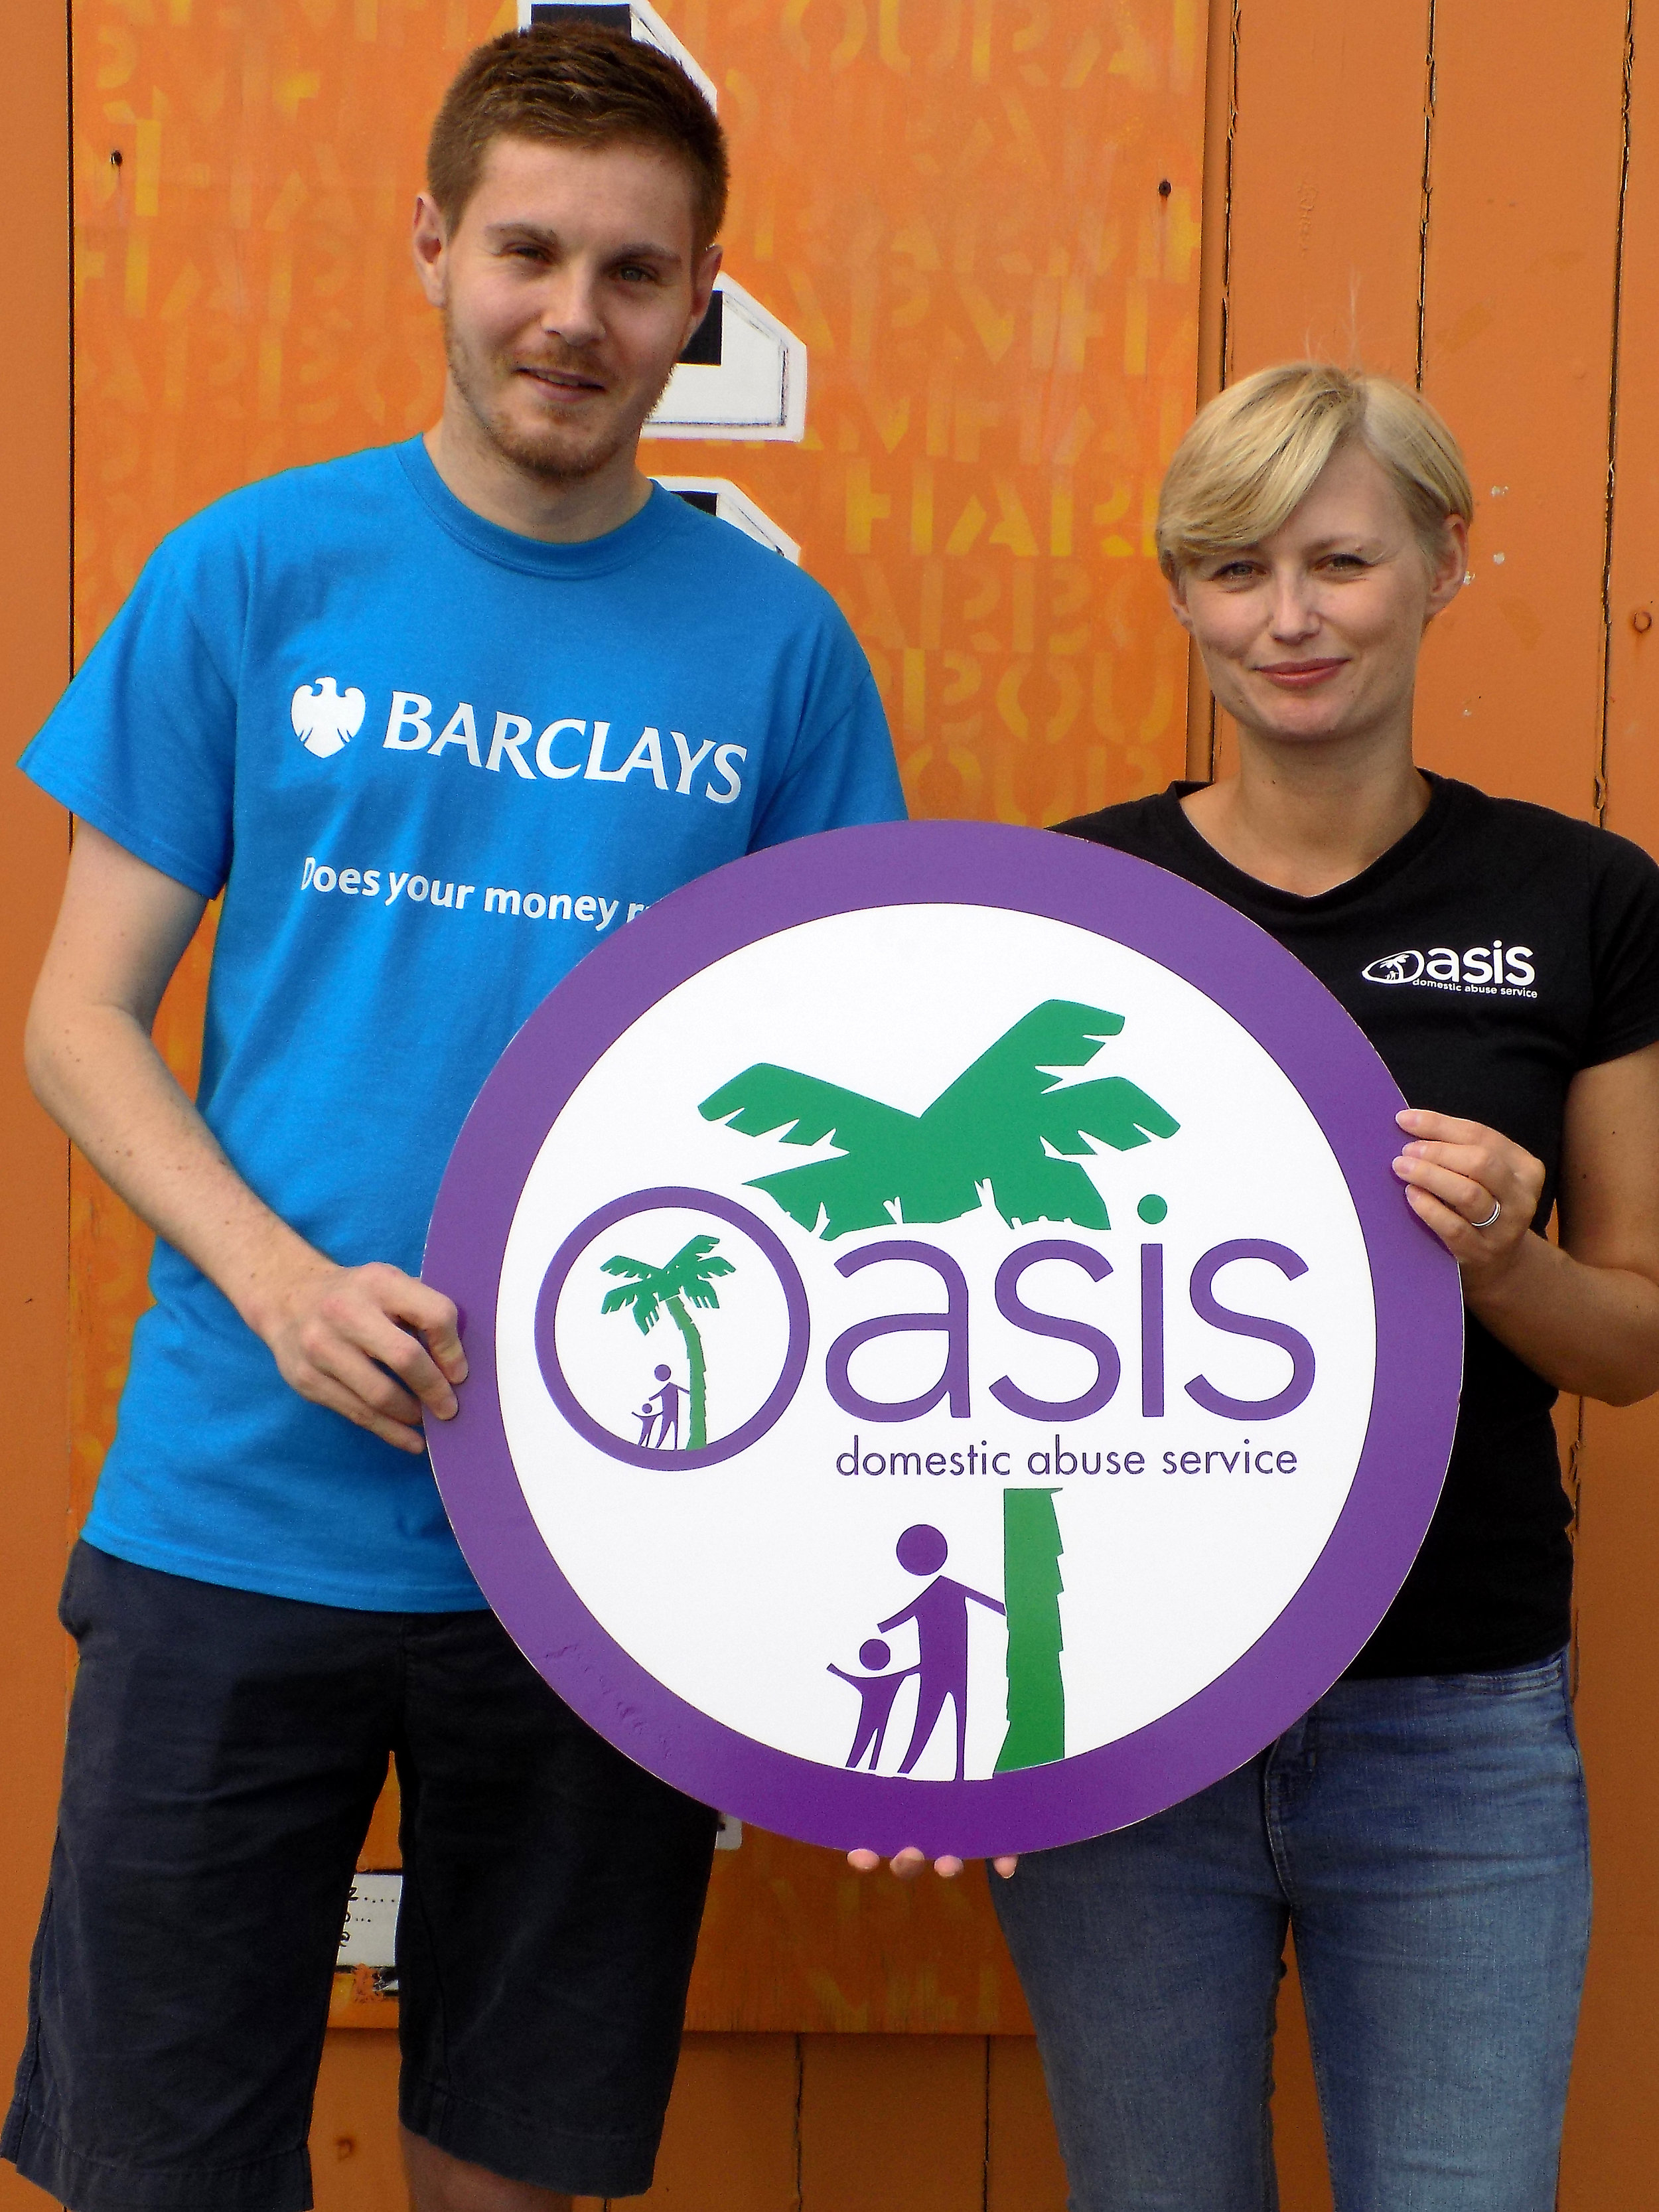 We're very grateful to Barclays Bank who provided £3000   match funding for the event